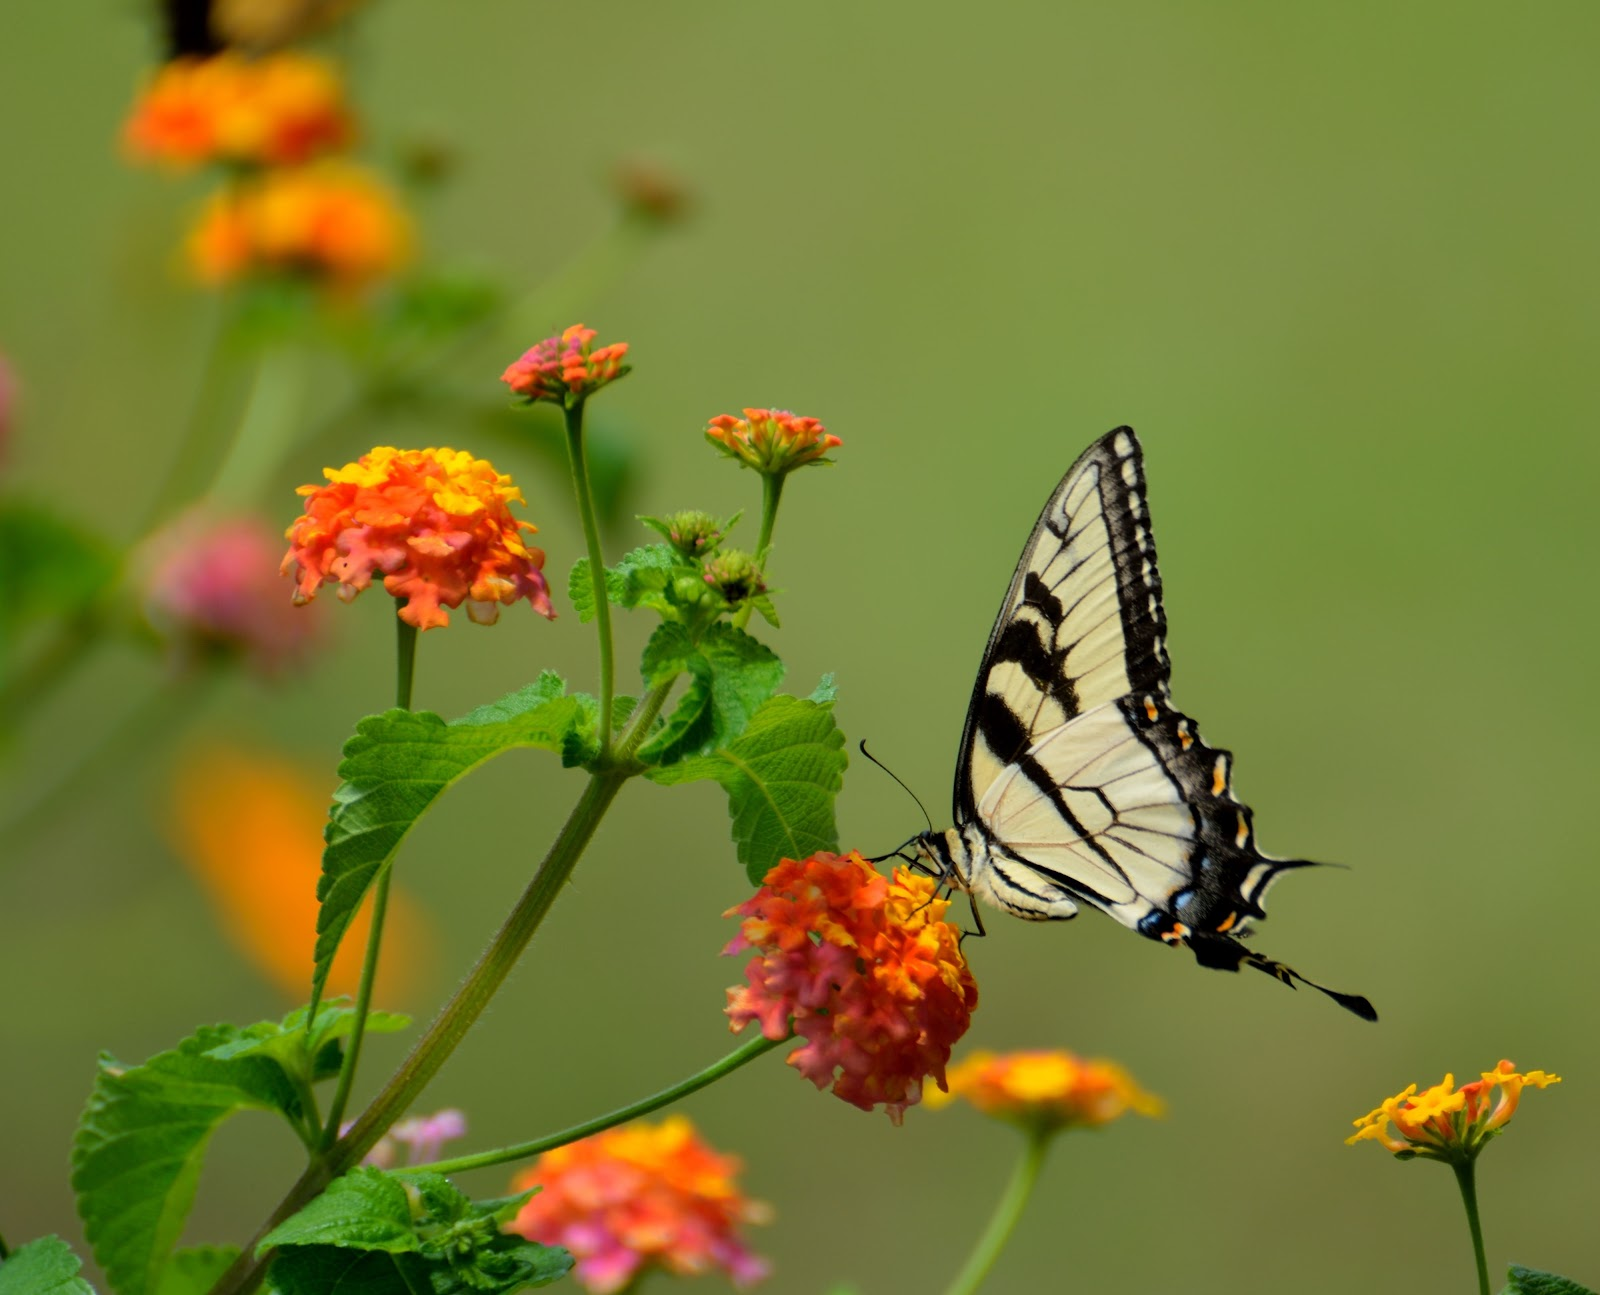 white-and-black-butterfly-on-yellow-flower-in-macro-pictures